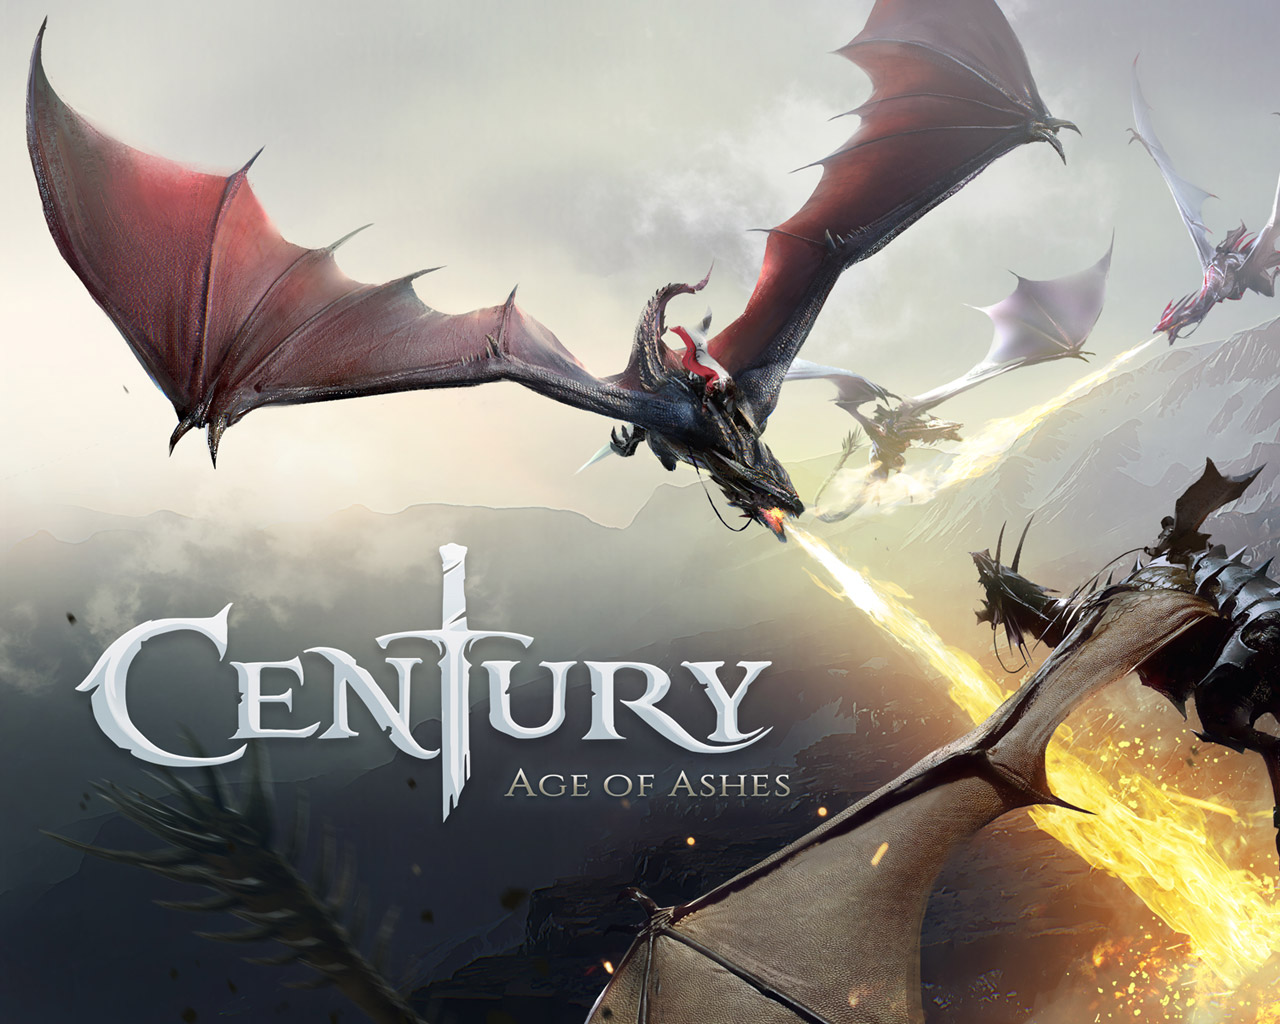 Free Century: Age of Ashes Wallpaper in 1280x1024